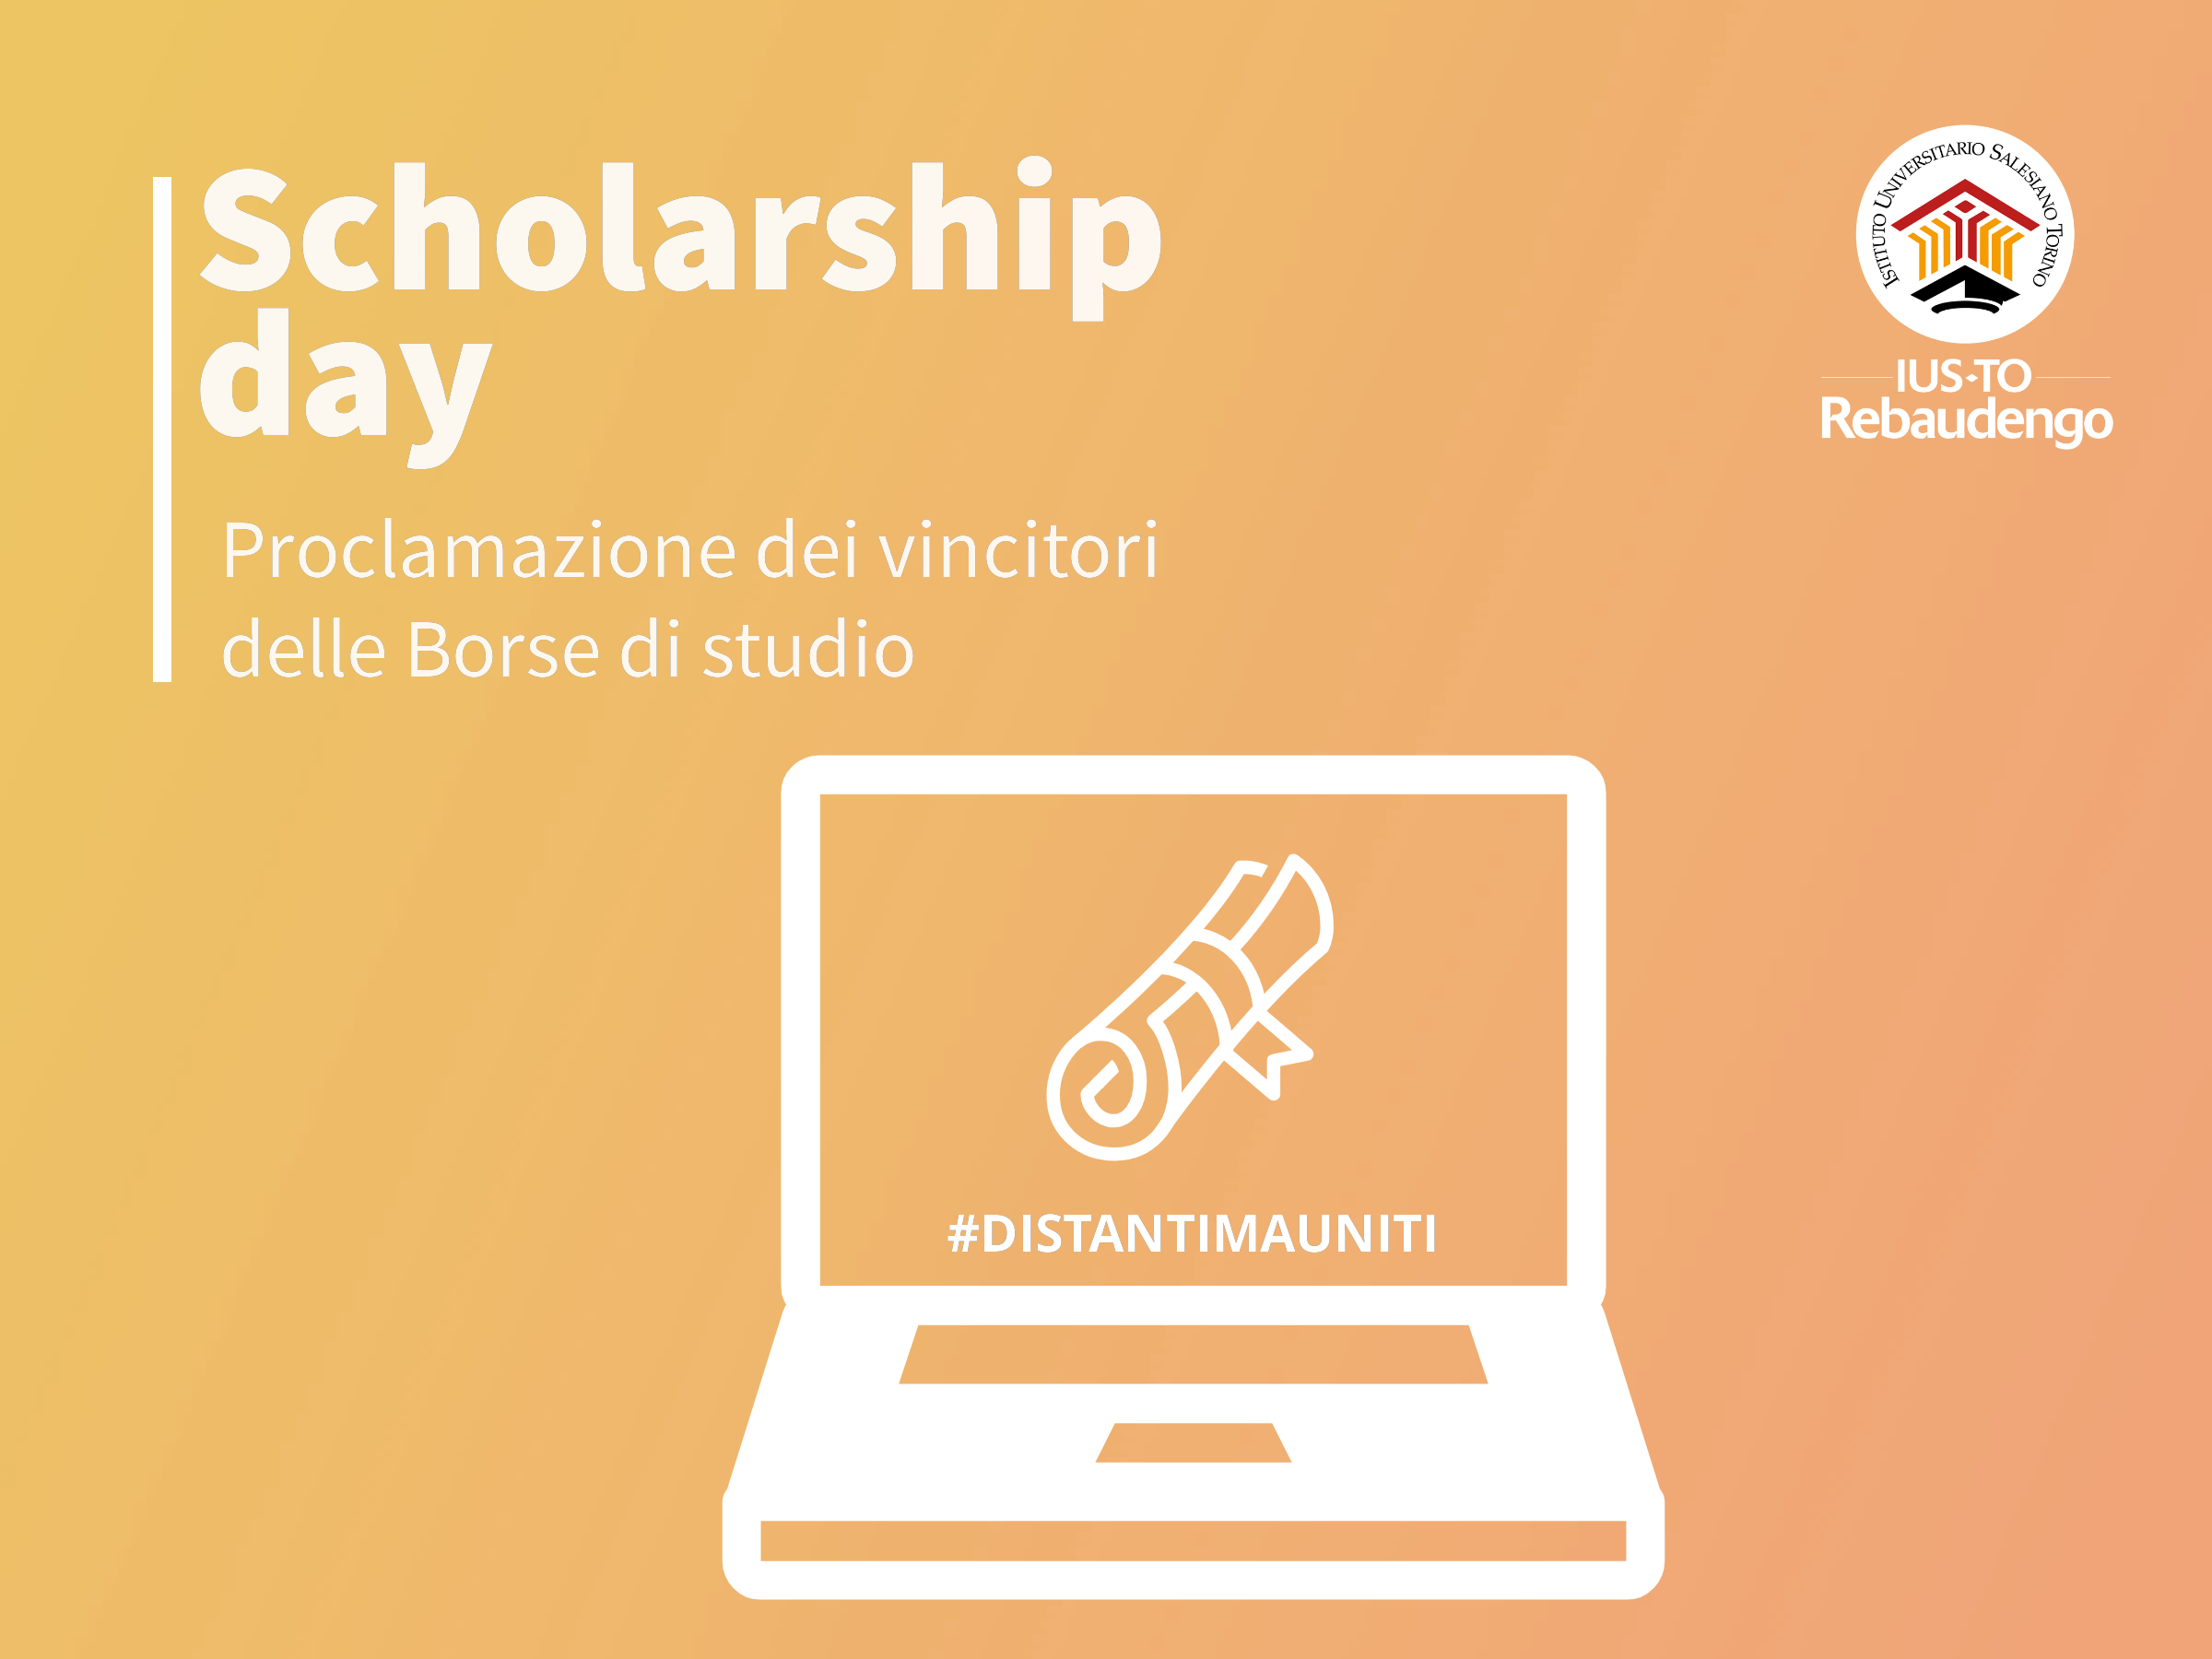 Scholarship day IUSTO